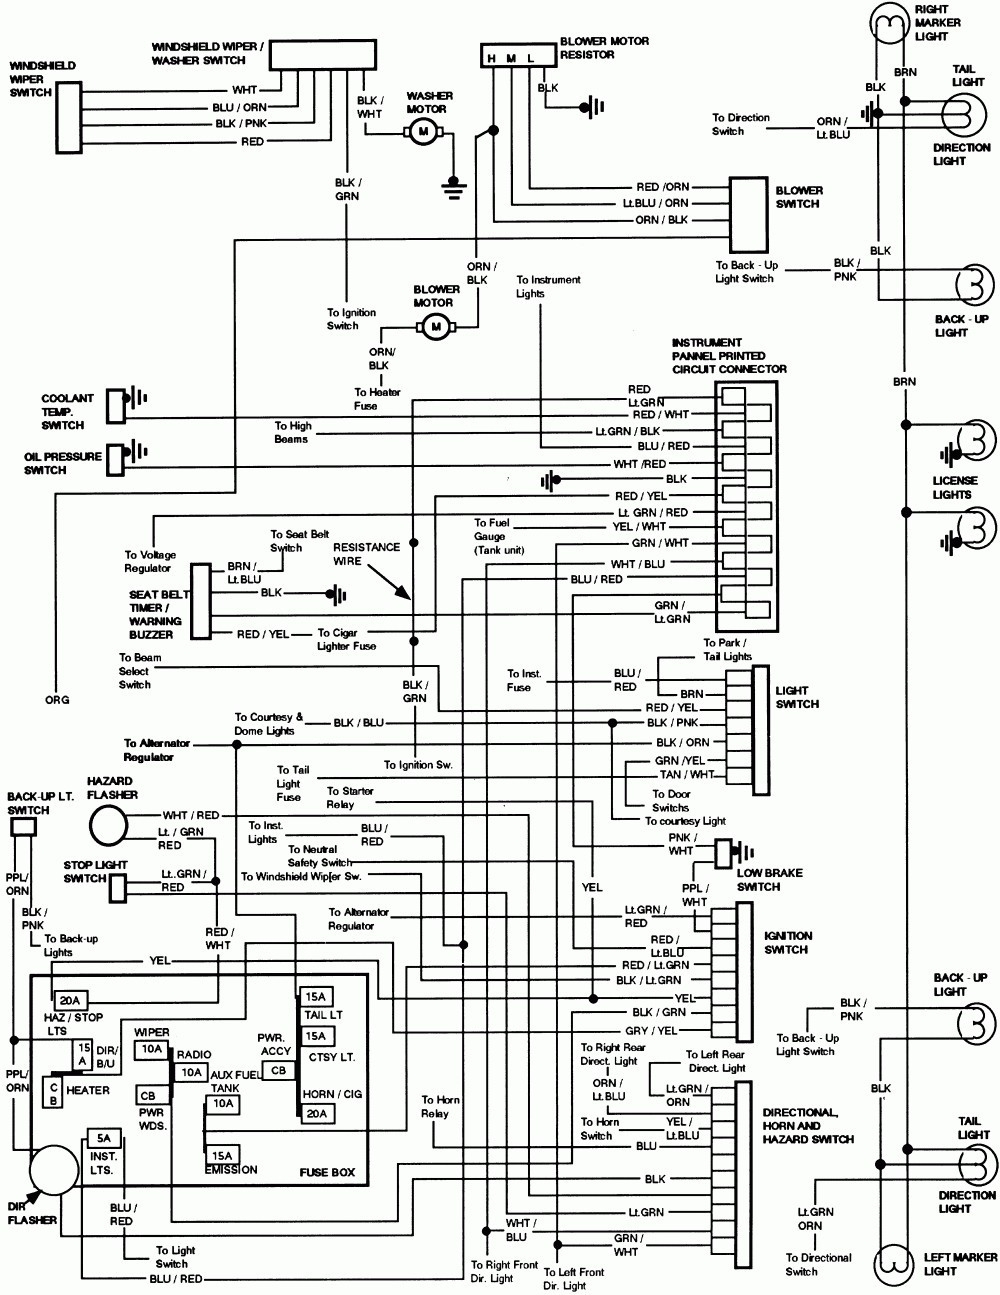 2008 ford f550 wiring schematic - electric guitars wiring diagrams -  usb-cable.yenpancane.jeanjaures37.fr  wiring diagram resource